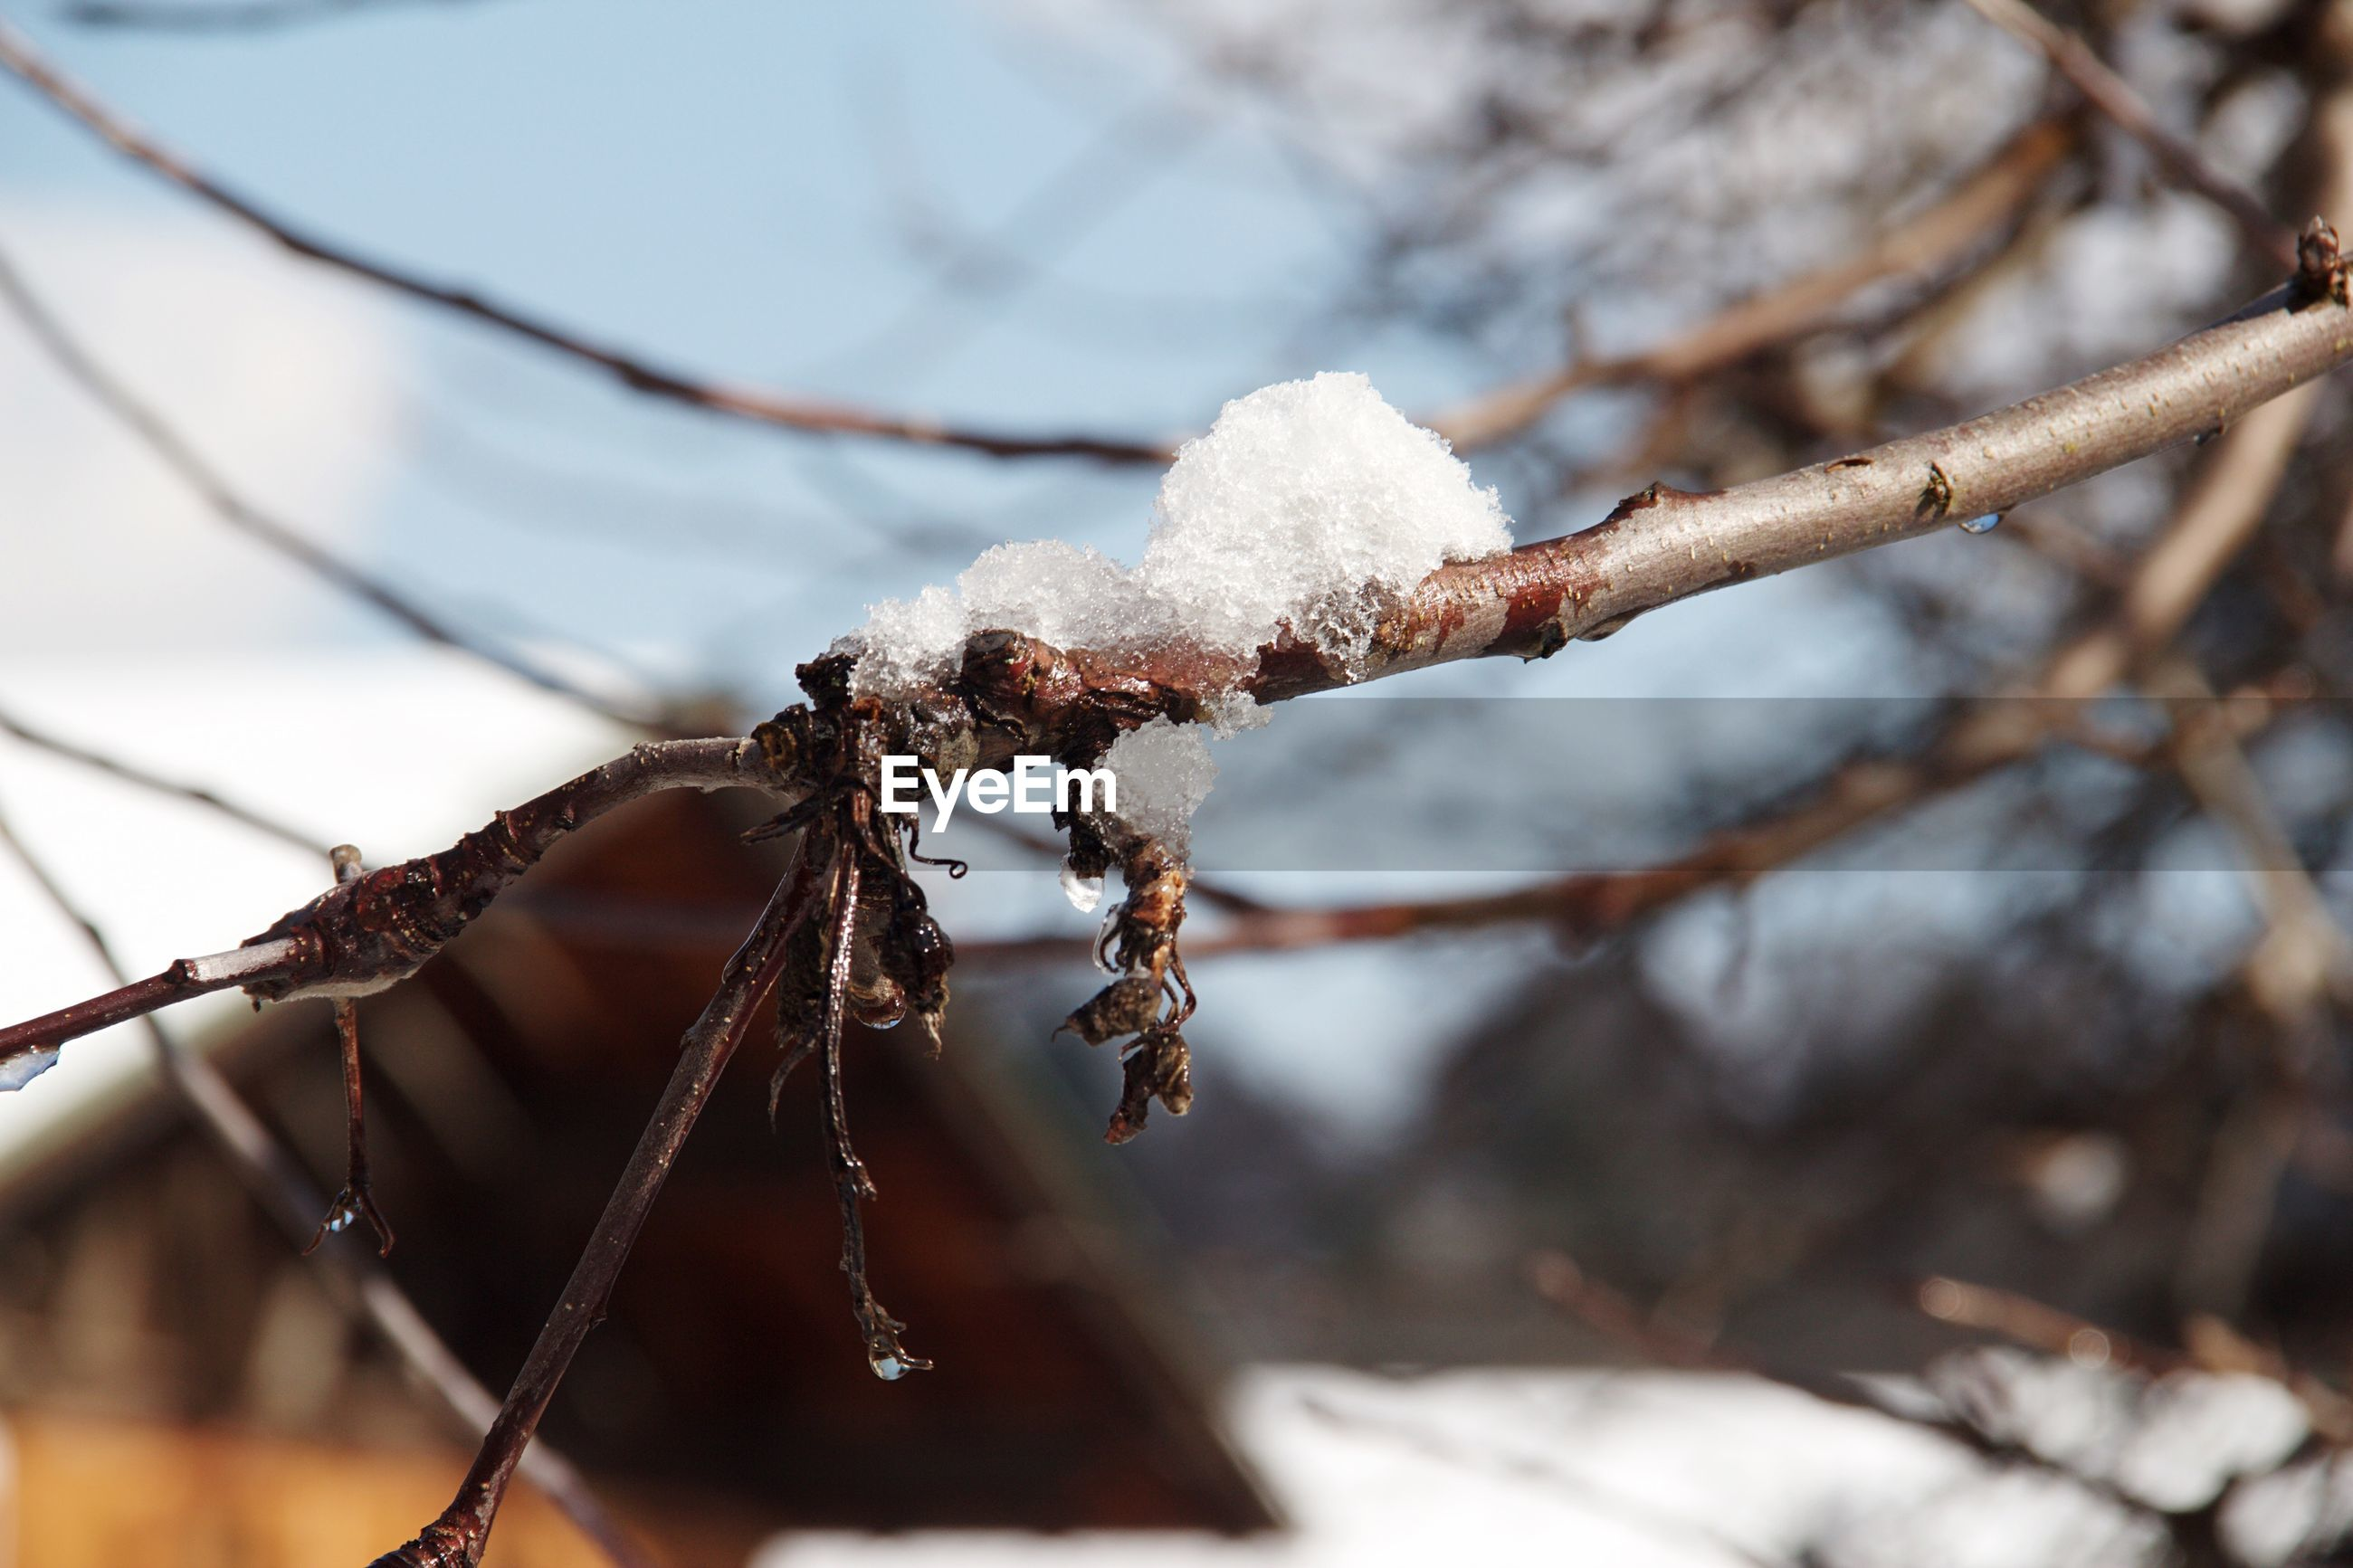 CLOSE-UP OF FROZEN PLANT ON TREE